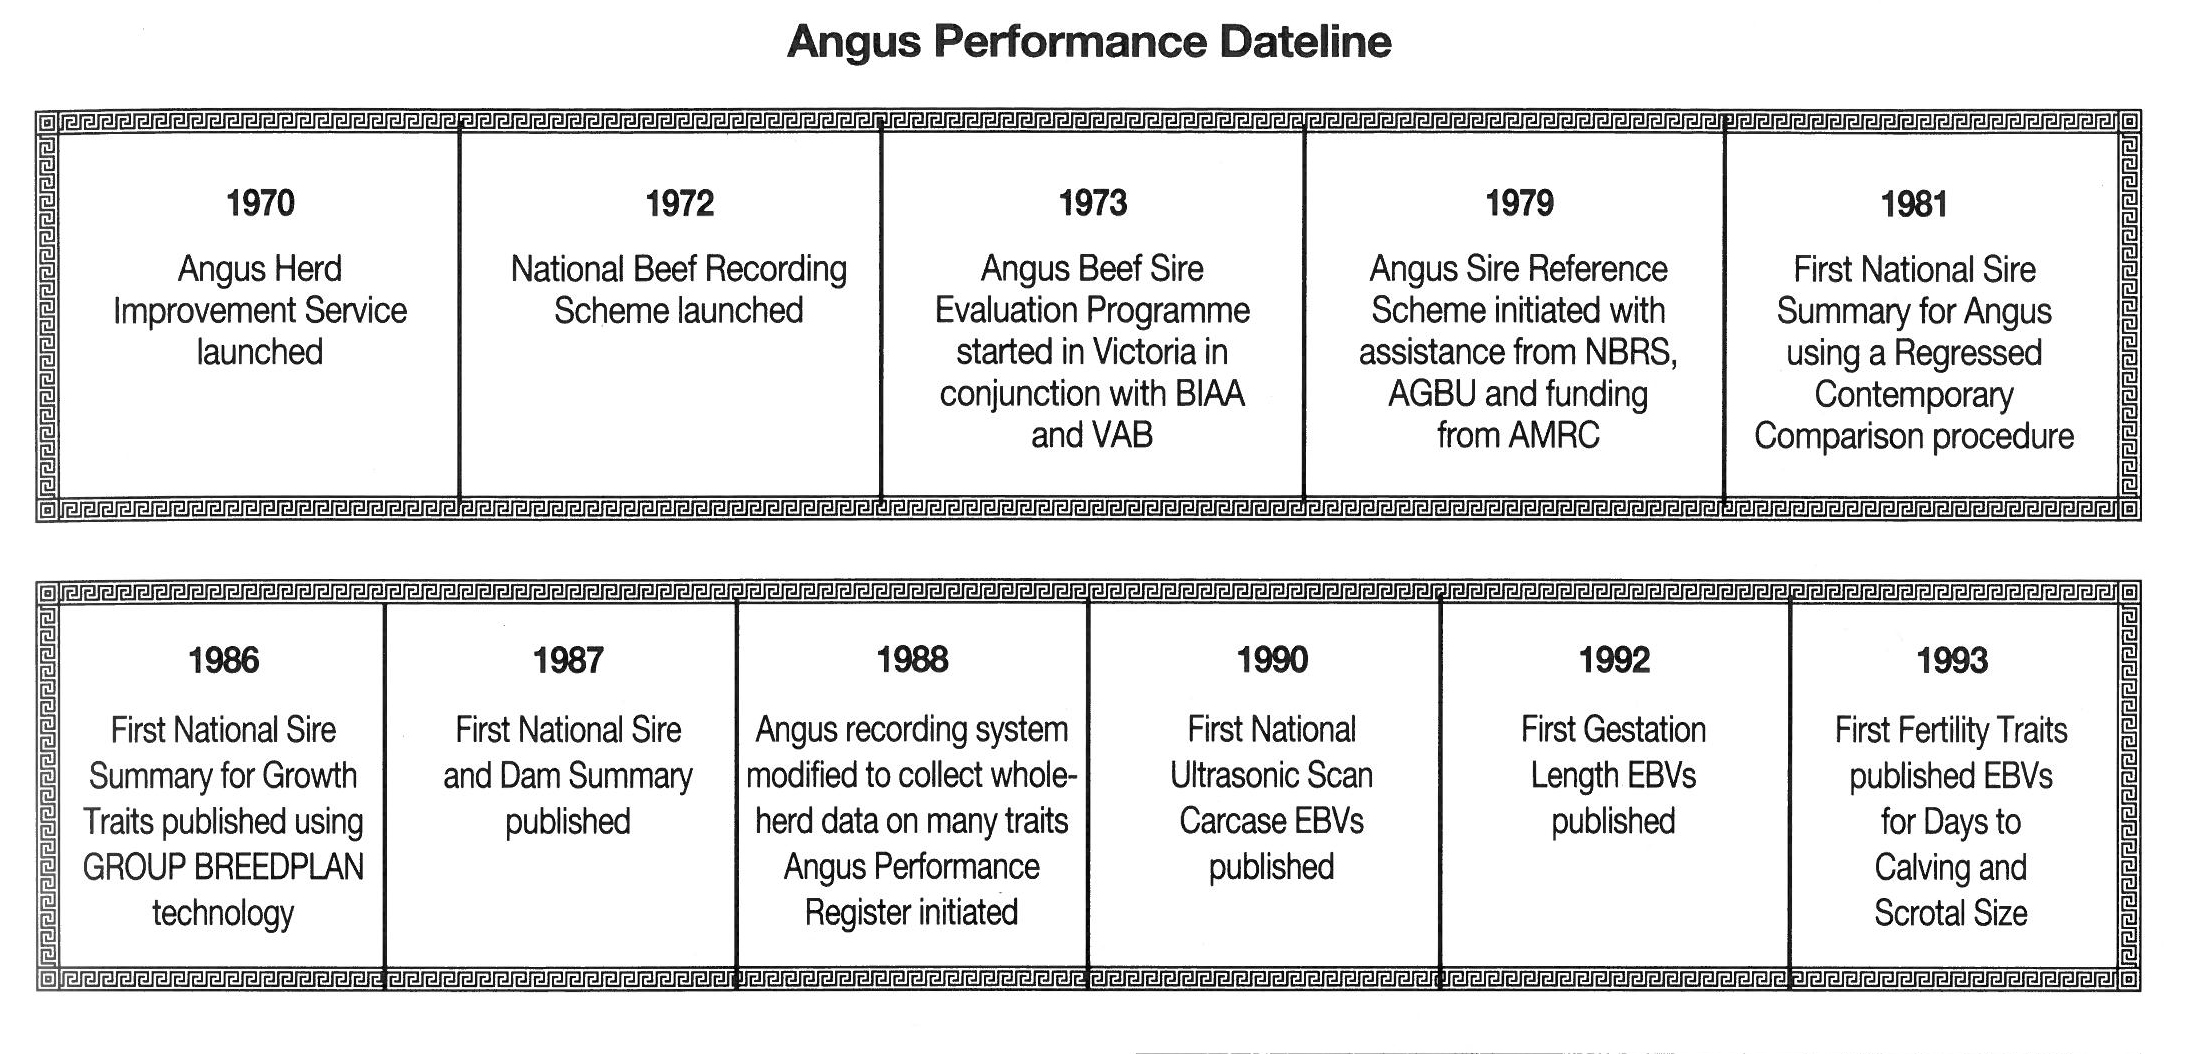 Angus Performance Dateline (Australian Angus Journal 1994)